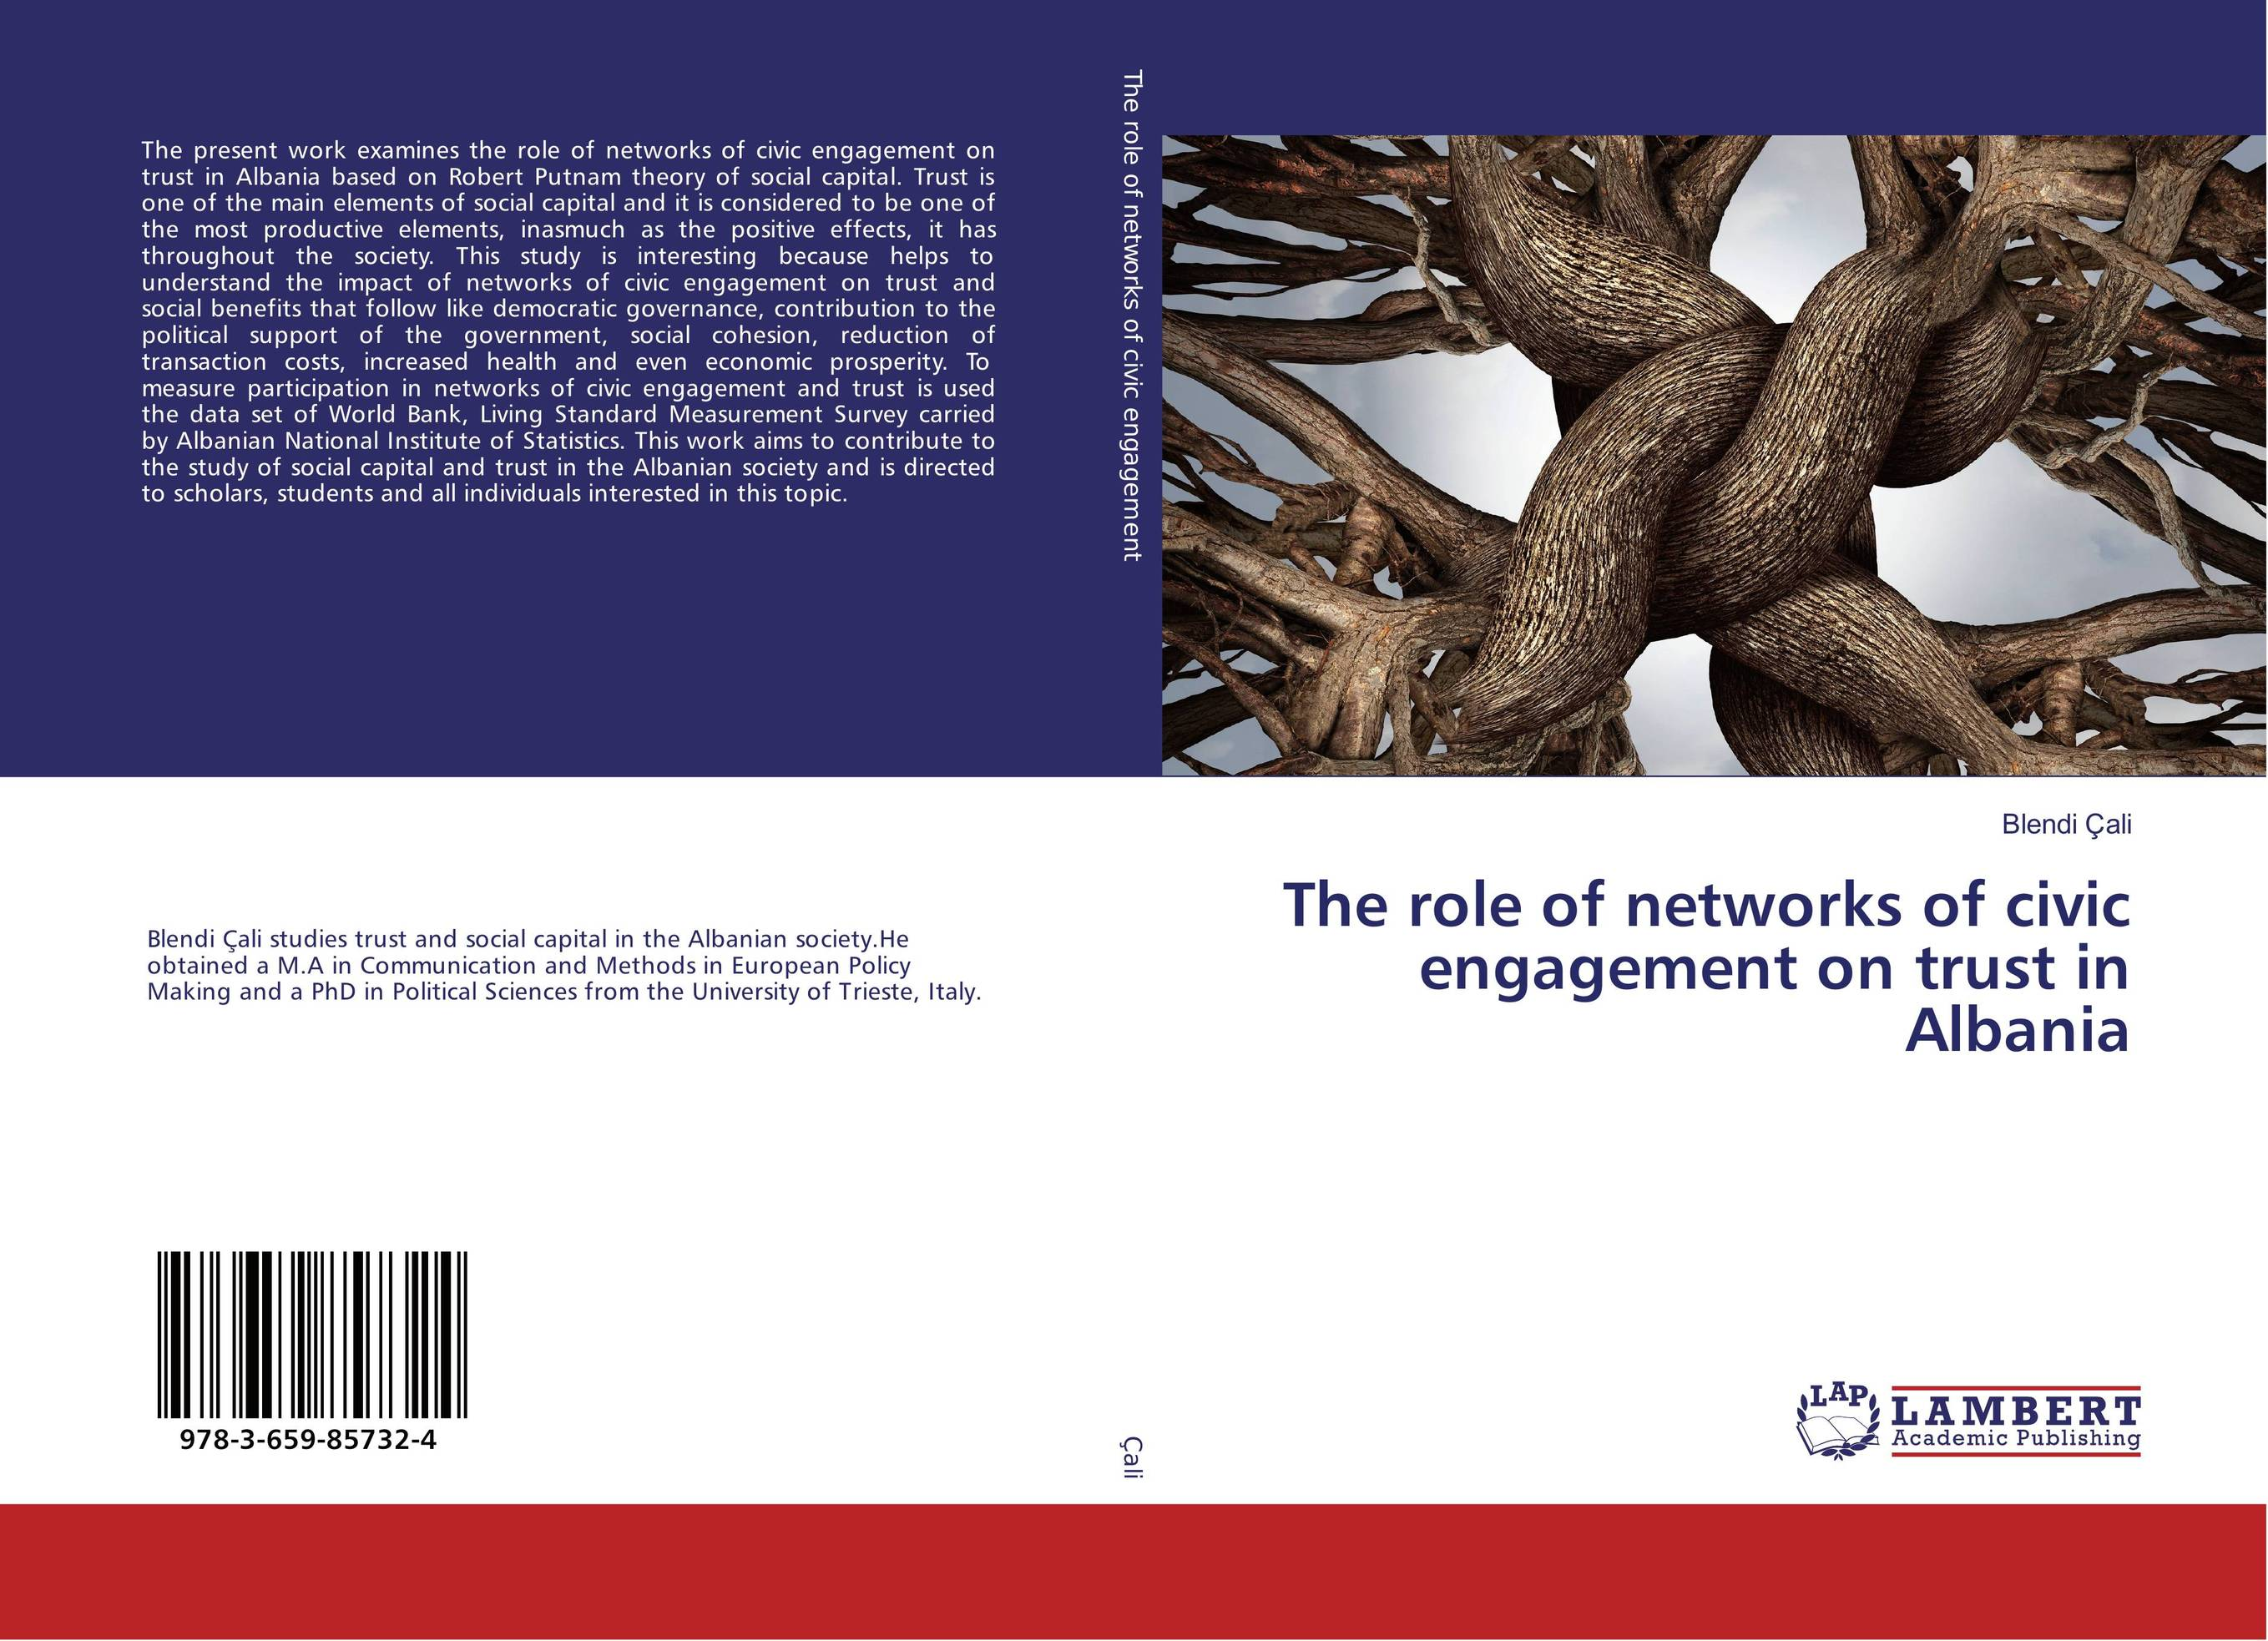 The role of networks of civic engagement on trust in Albania dedicated to honda civic glass lifter assembly eight generations of civic 06 11 models after the left behind the main driving